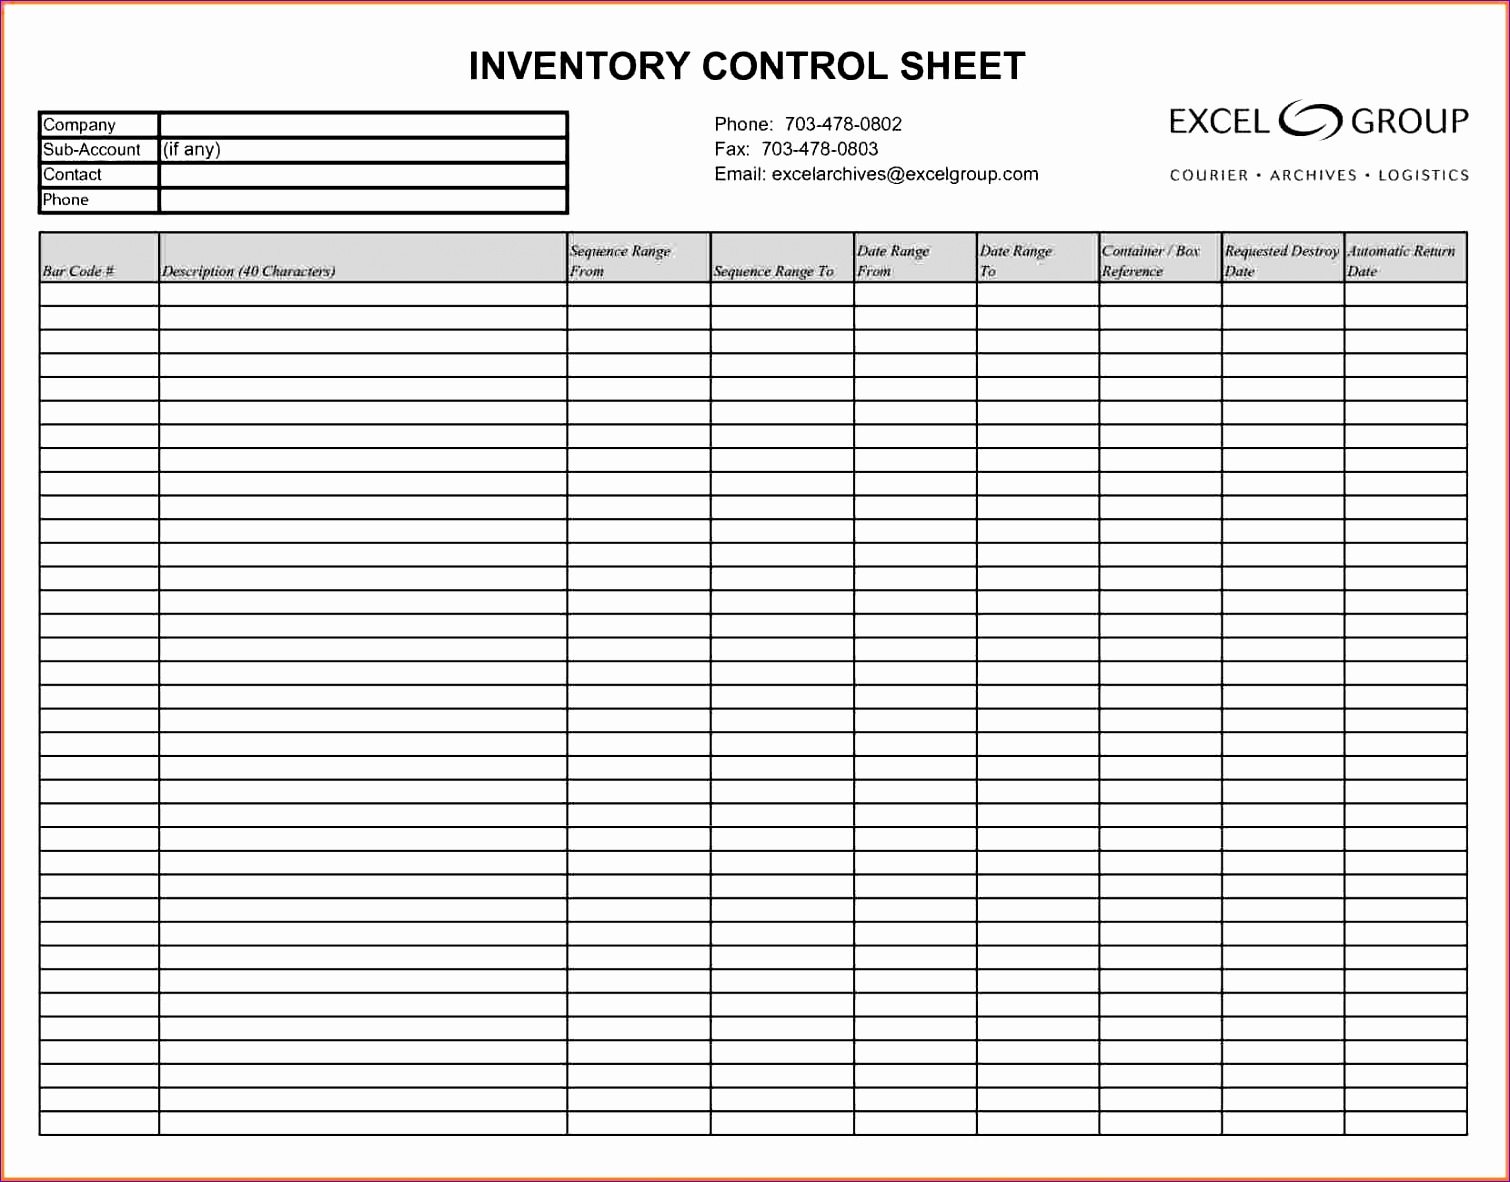 10 inventory spreadsheet examples 15101182